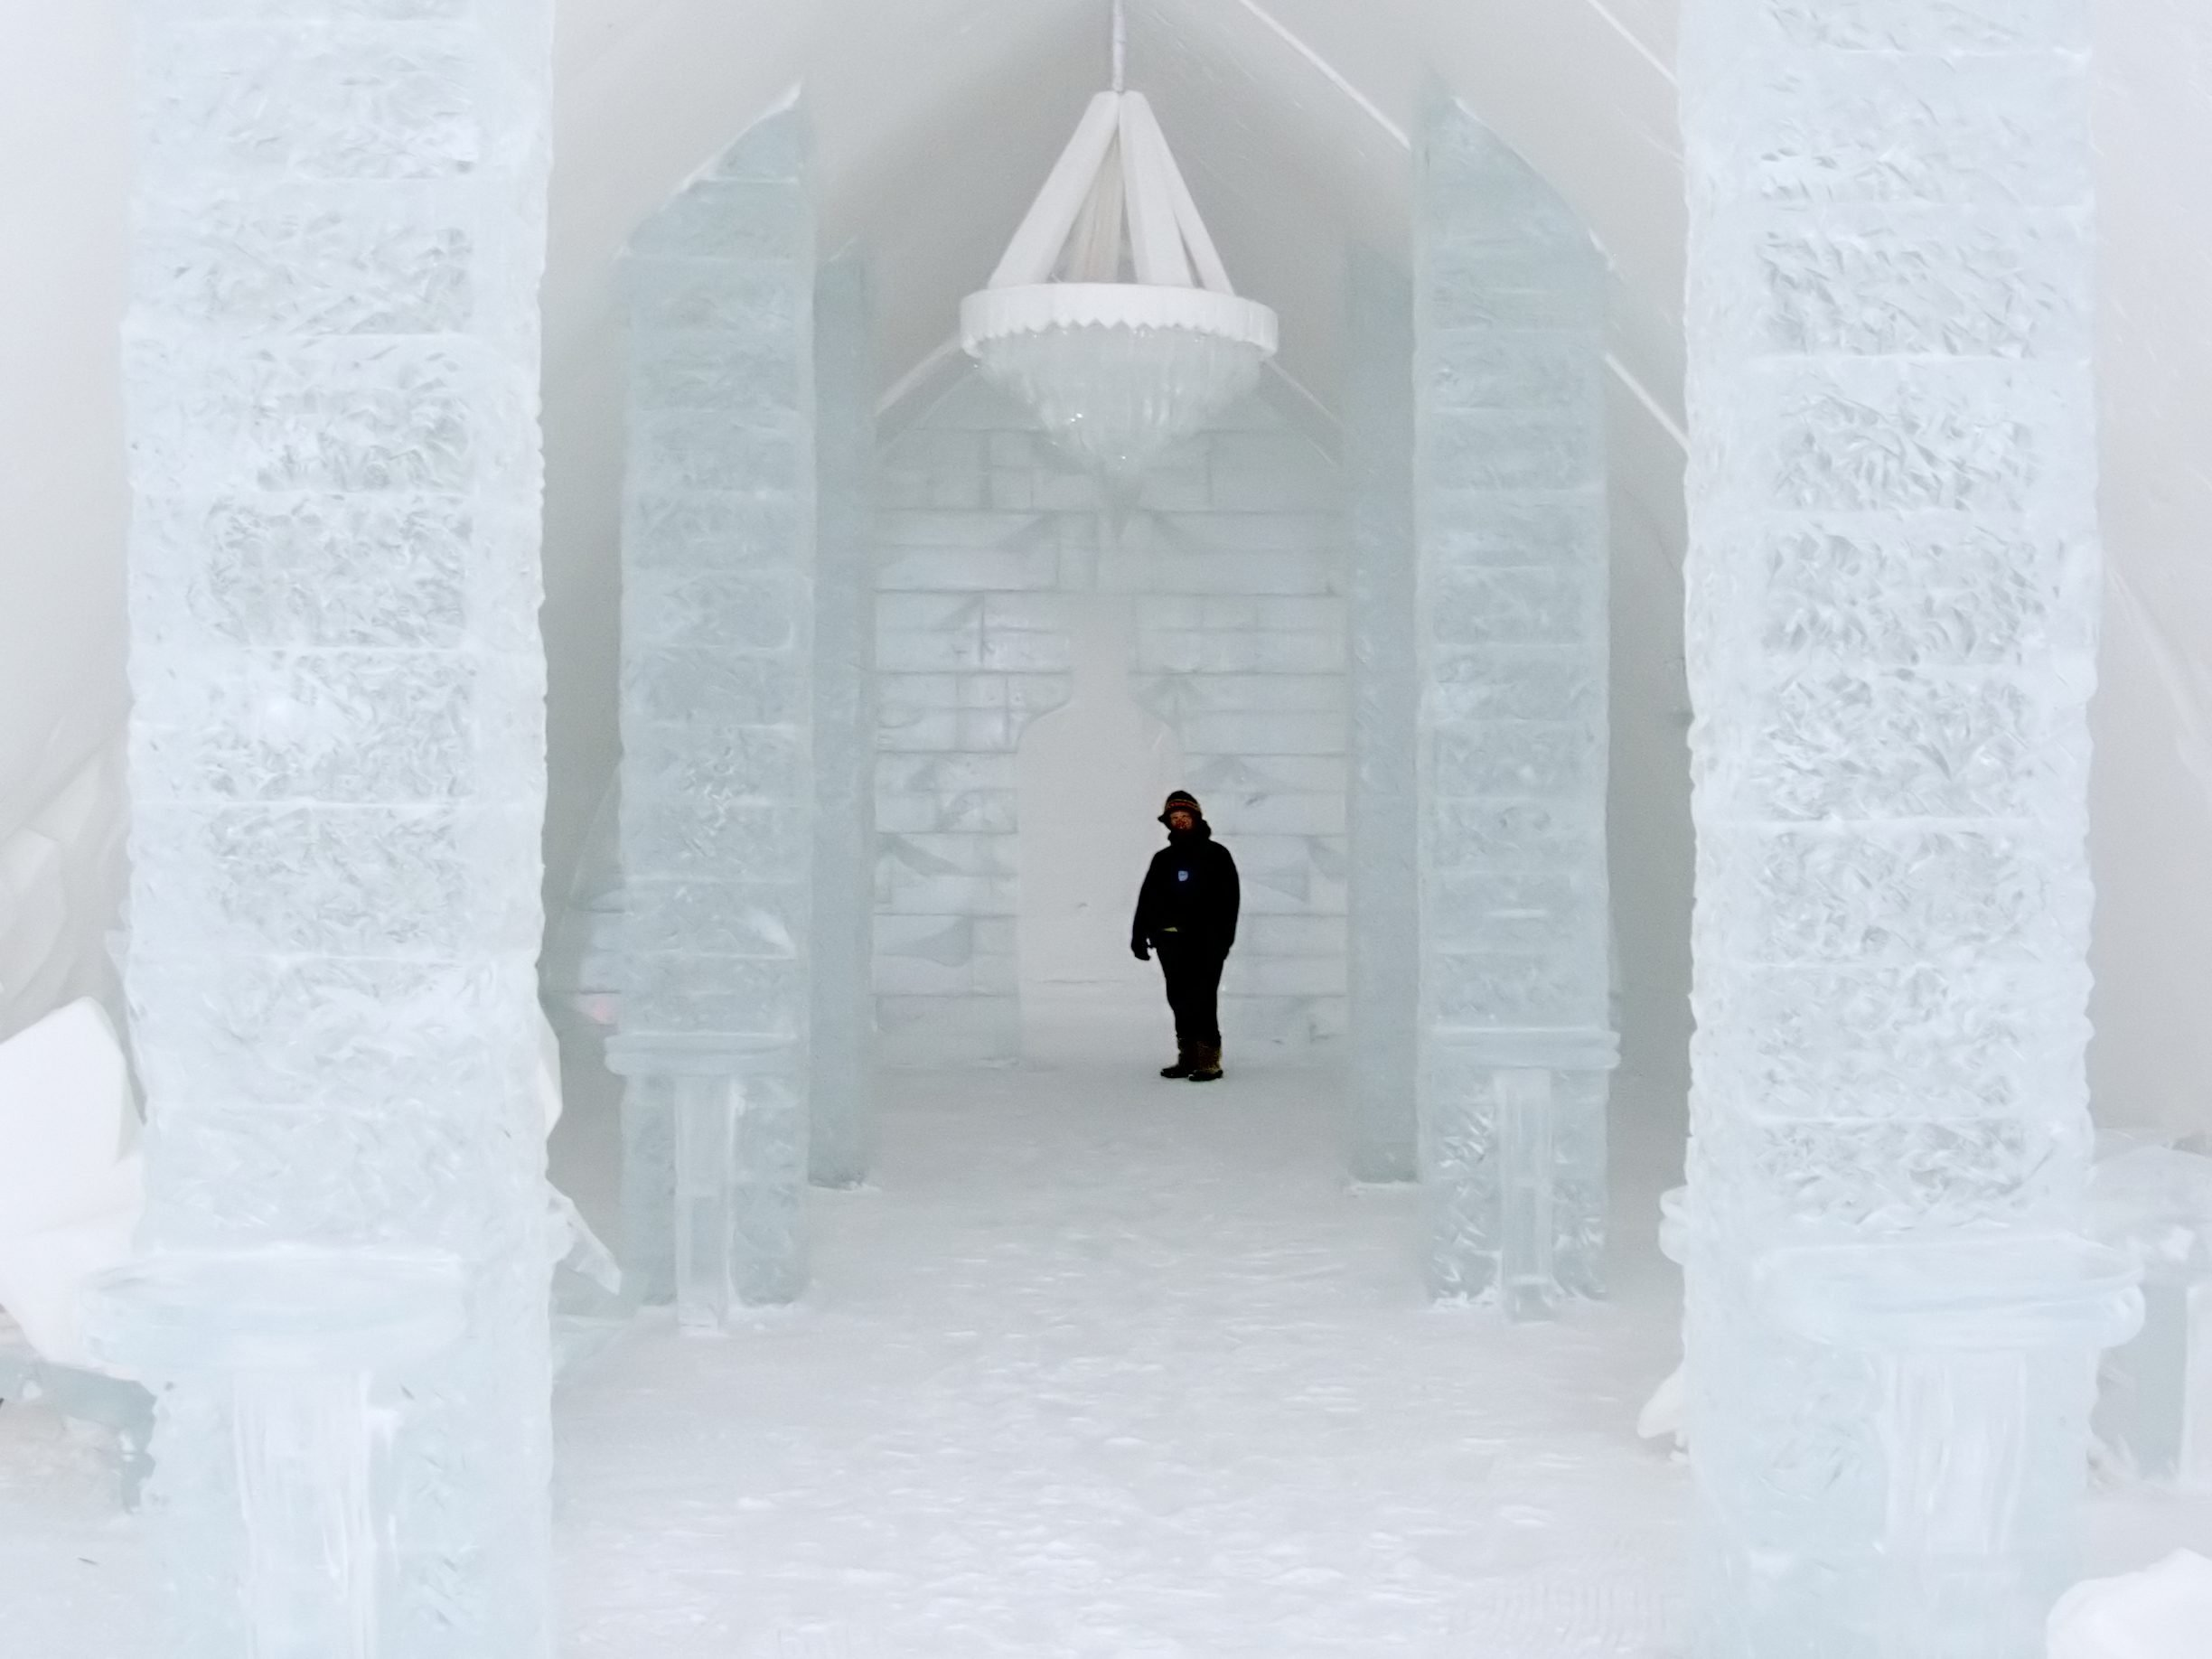 7. You Can Sleep in an Ice Hotel